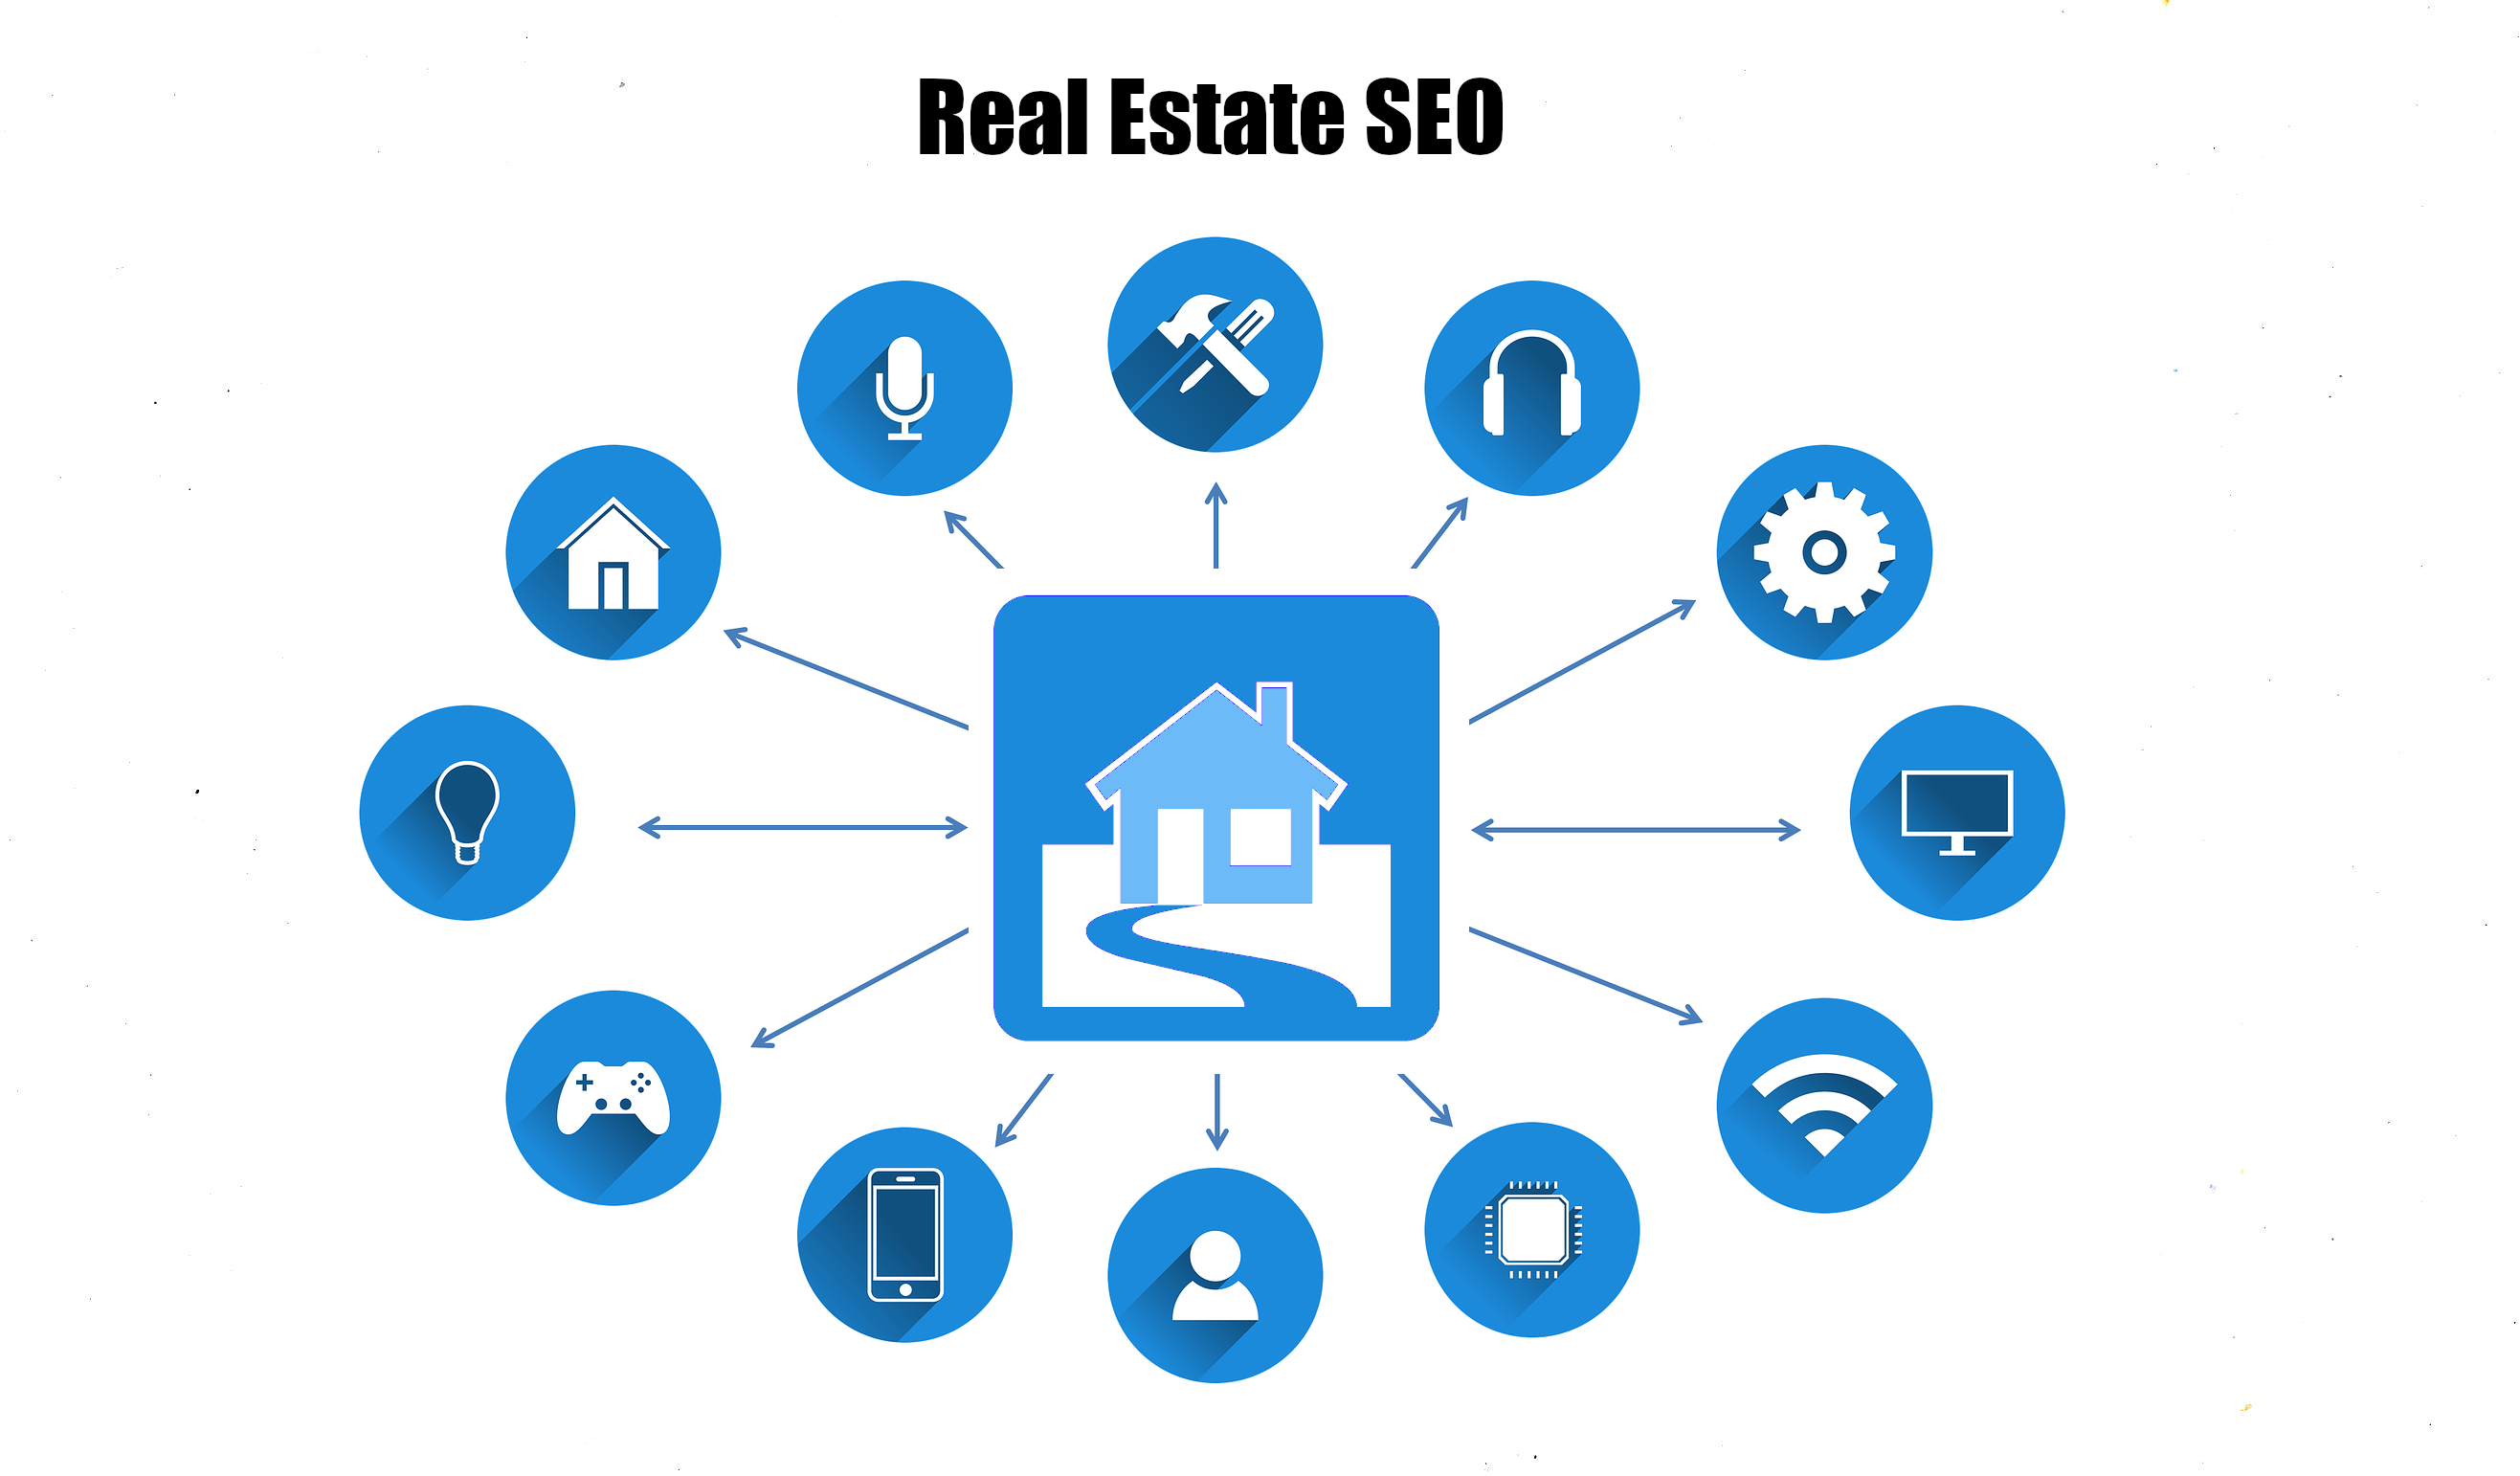 Real Estate SEO Tips & Tricks For Small Businesses